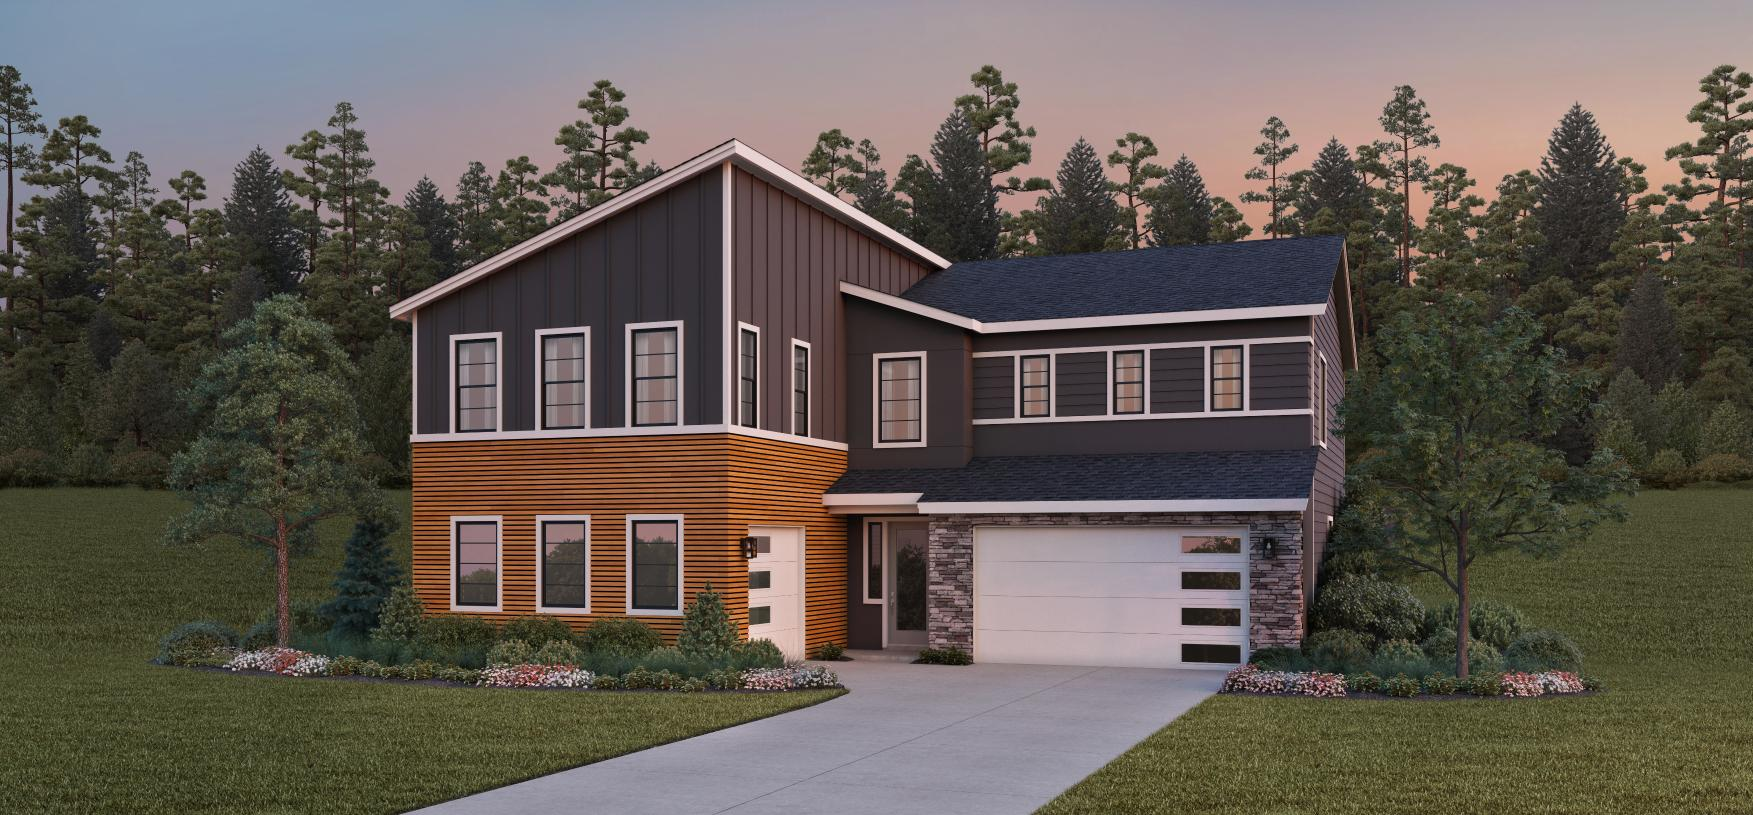 Striking contemporary details on the Baneberry home design